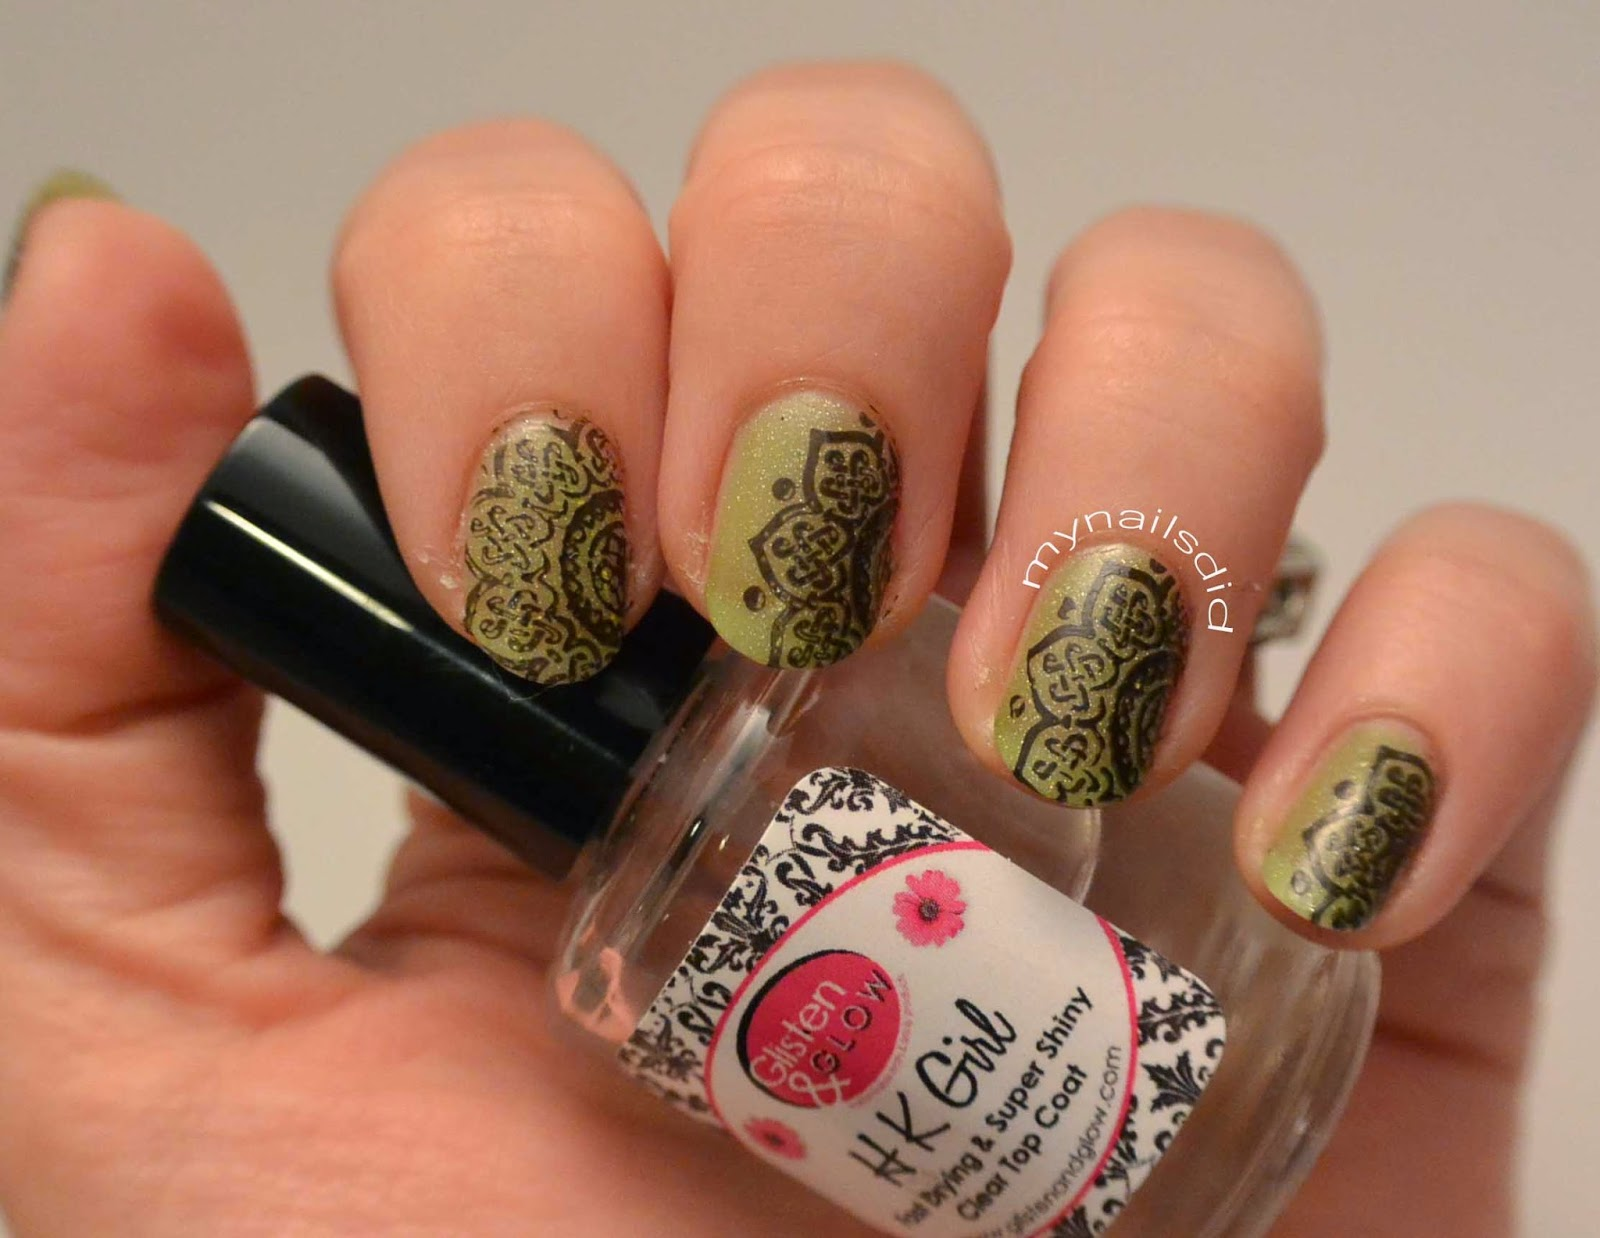 My Nails Did: Thermal Polish + MoYou Stamping Mani